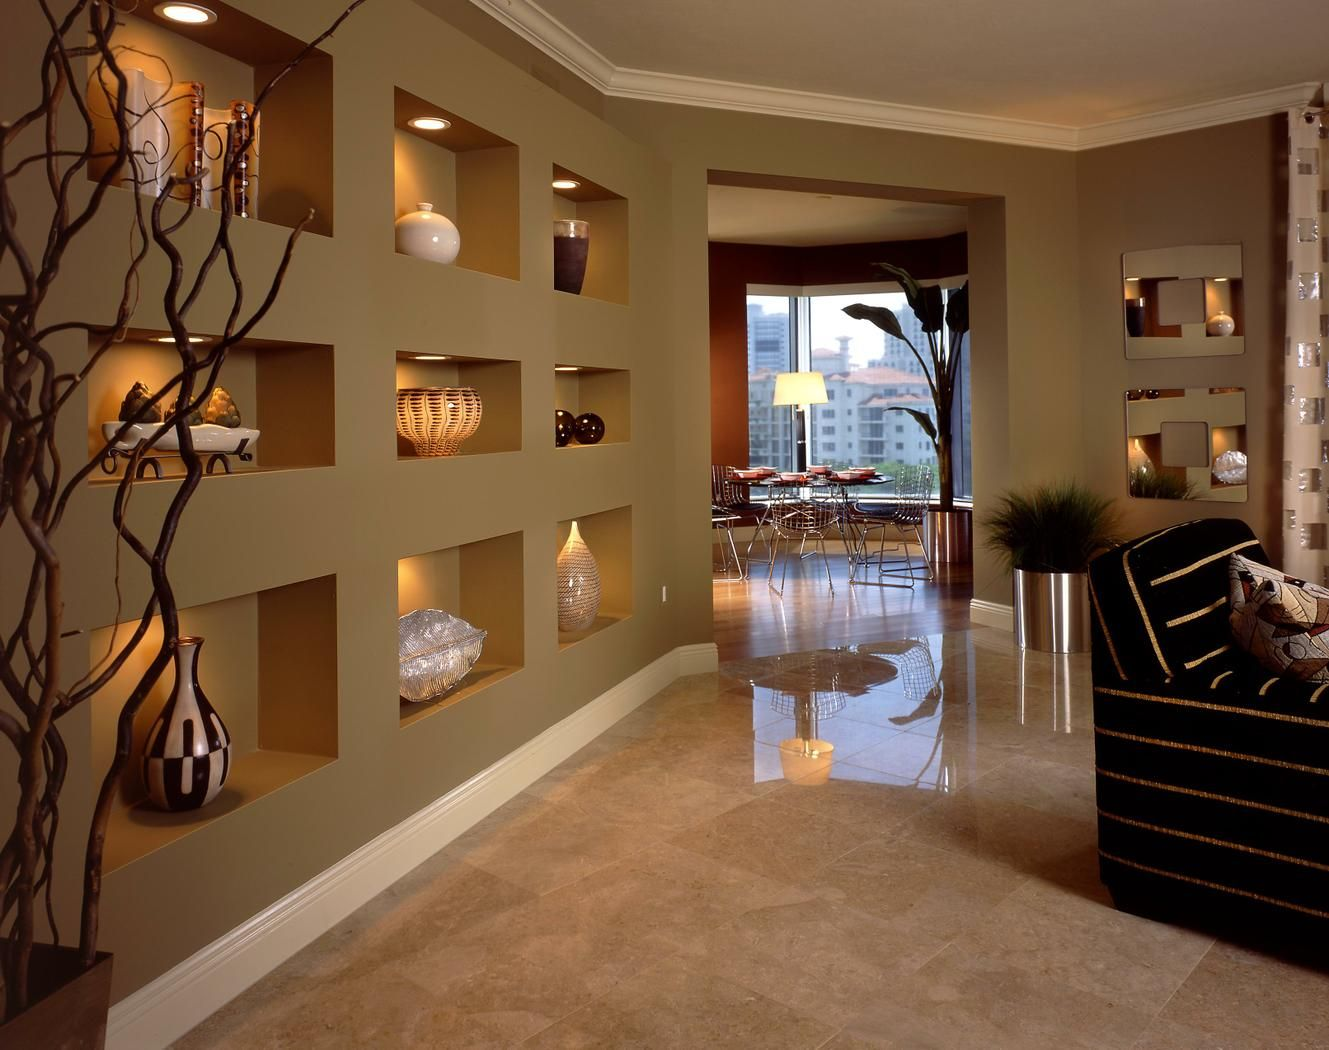 Take a look in 15 gorgeous gypsum board wall decoration for classy